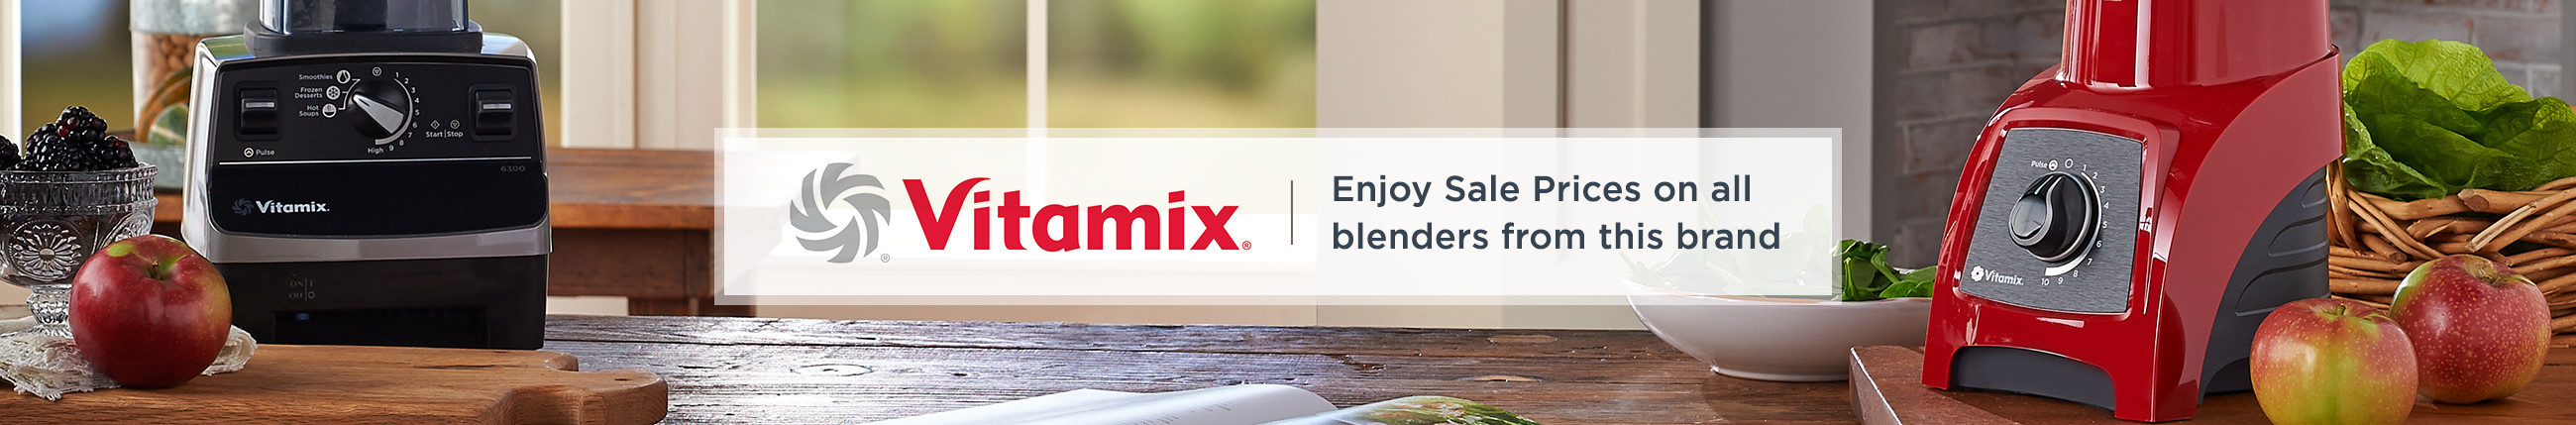 Vitamix. Enjoy Sale Prices on all blenders from this brand.